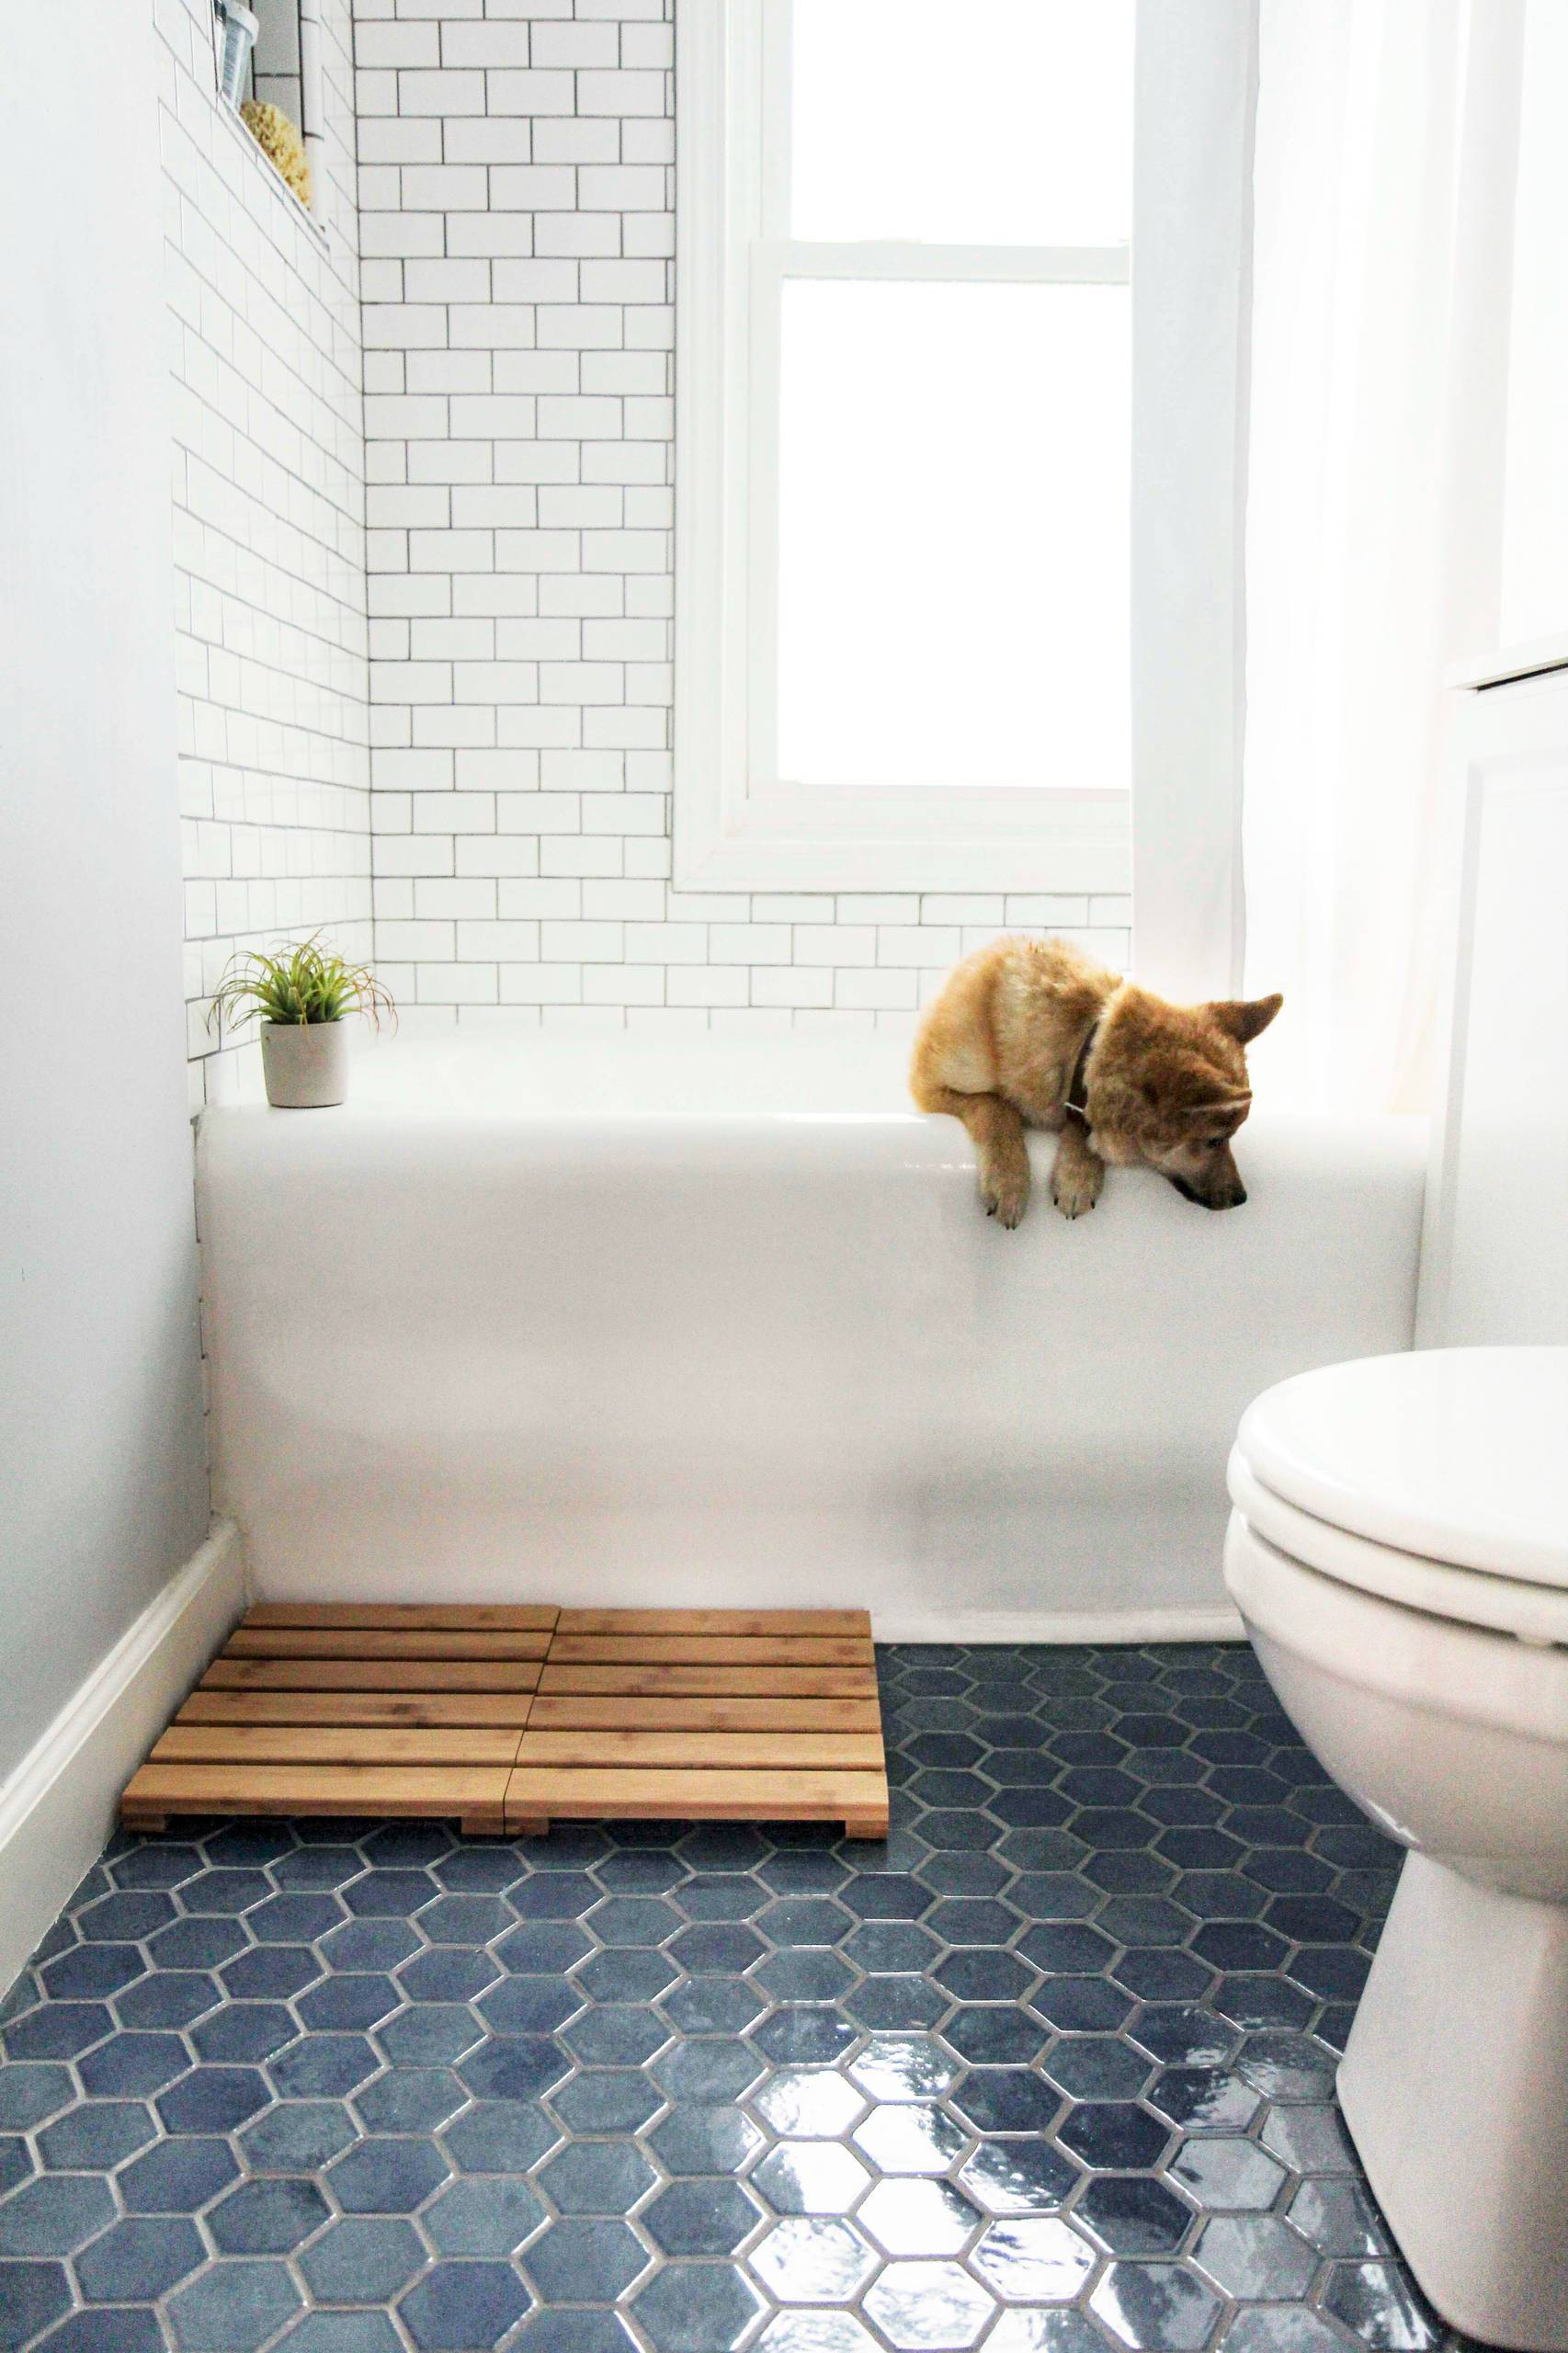 Subway-tiles-on-the-wall-coupled-with-hexagonal-floor-tiles-in-the-breezy-modern-bathroom-45637